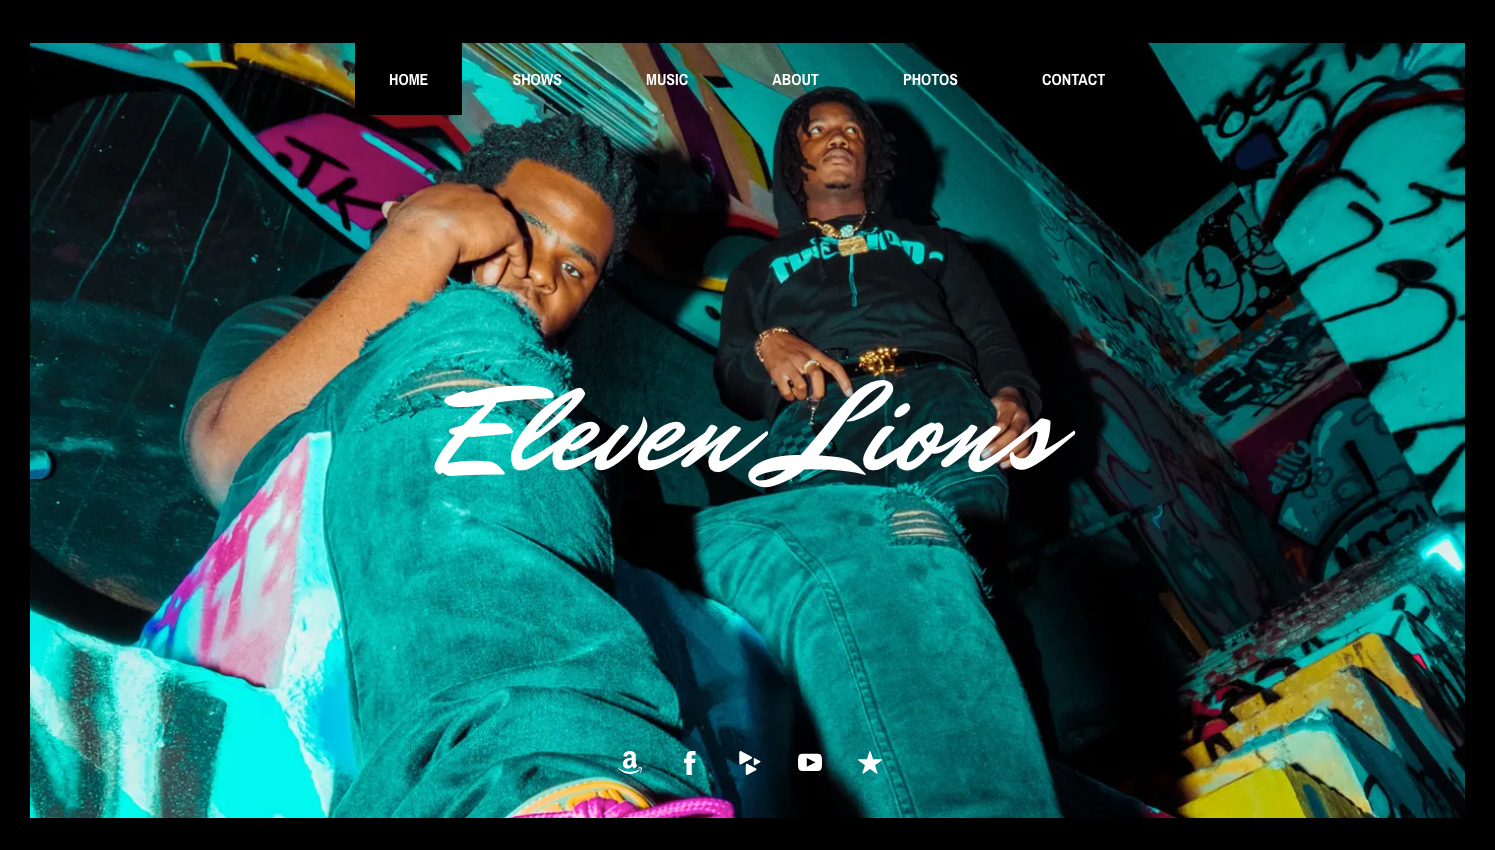 Band website template example: Nosi